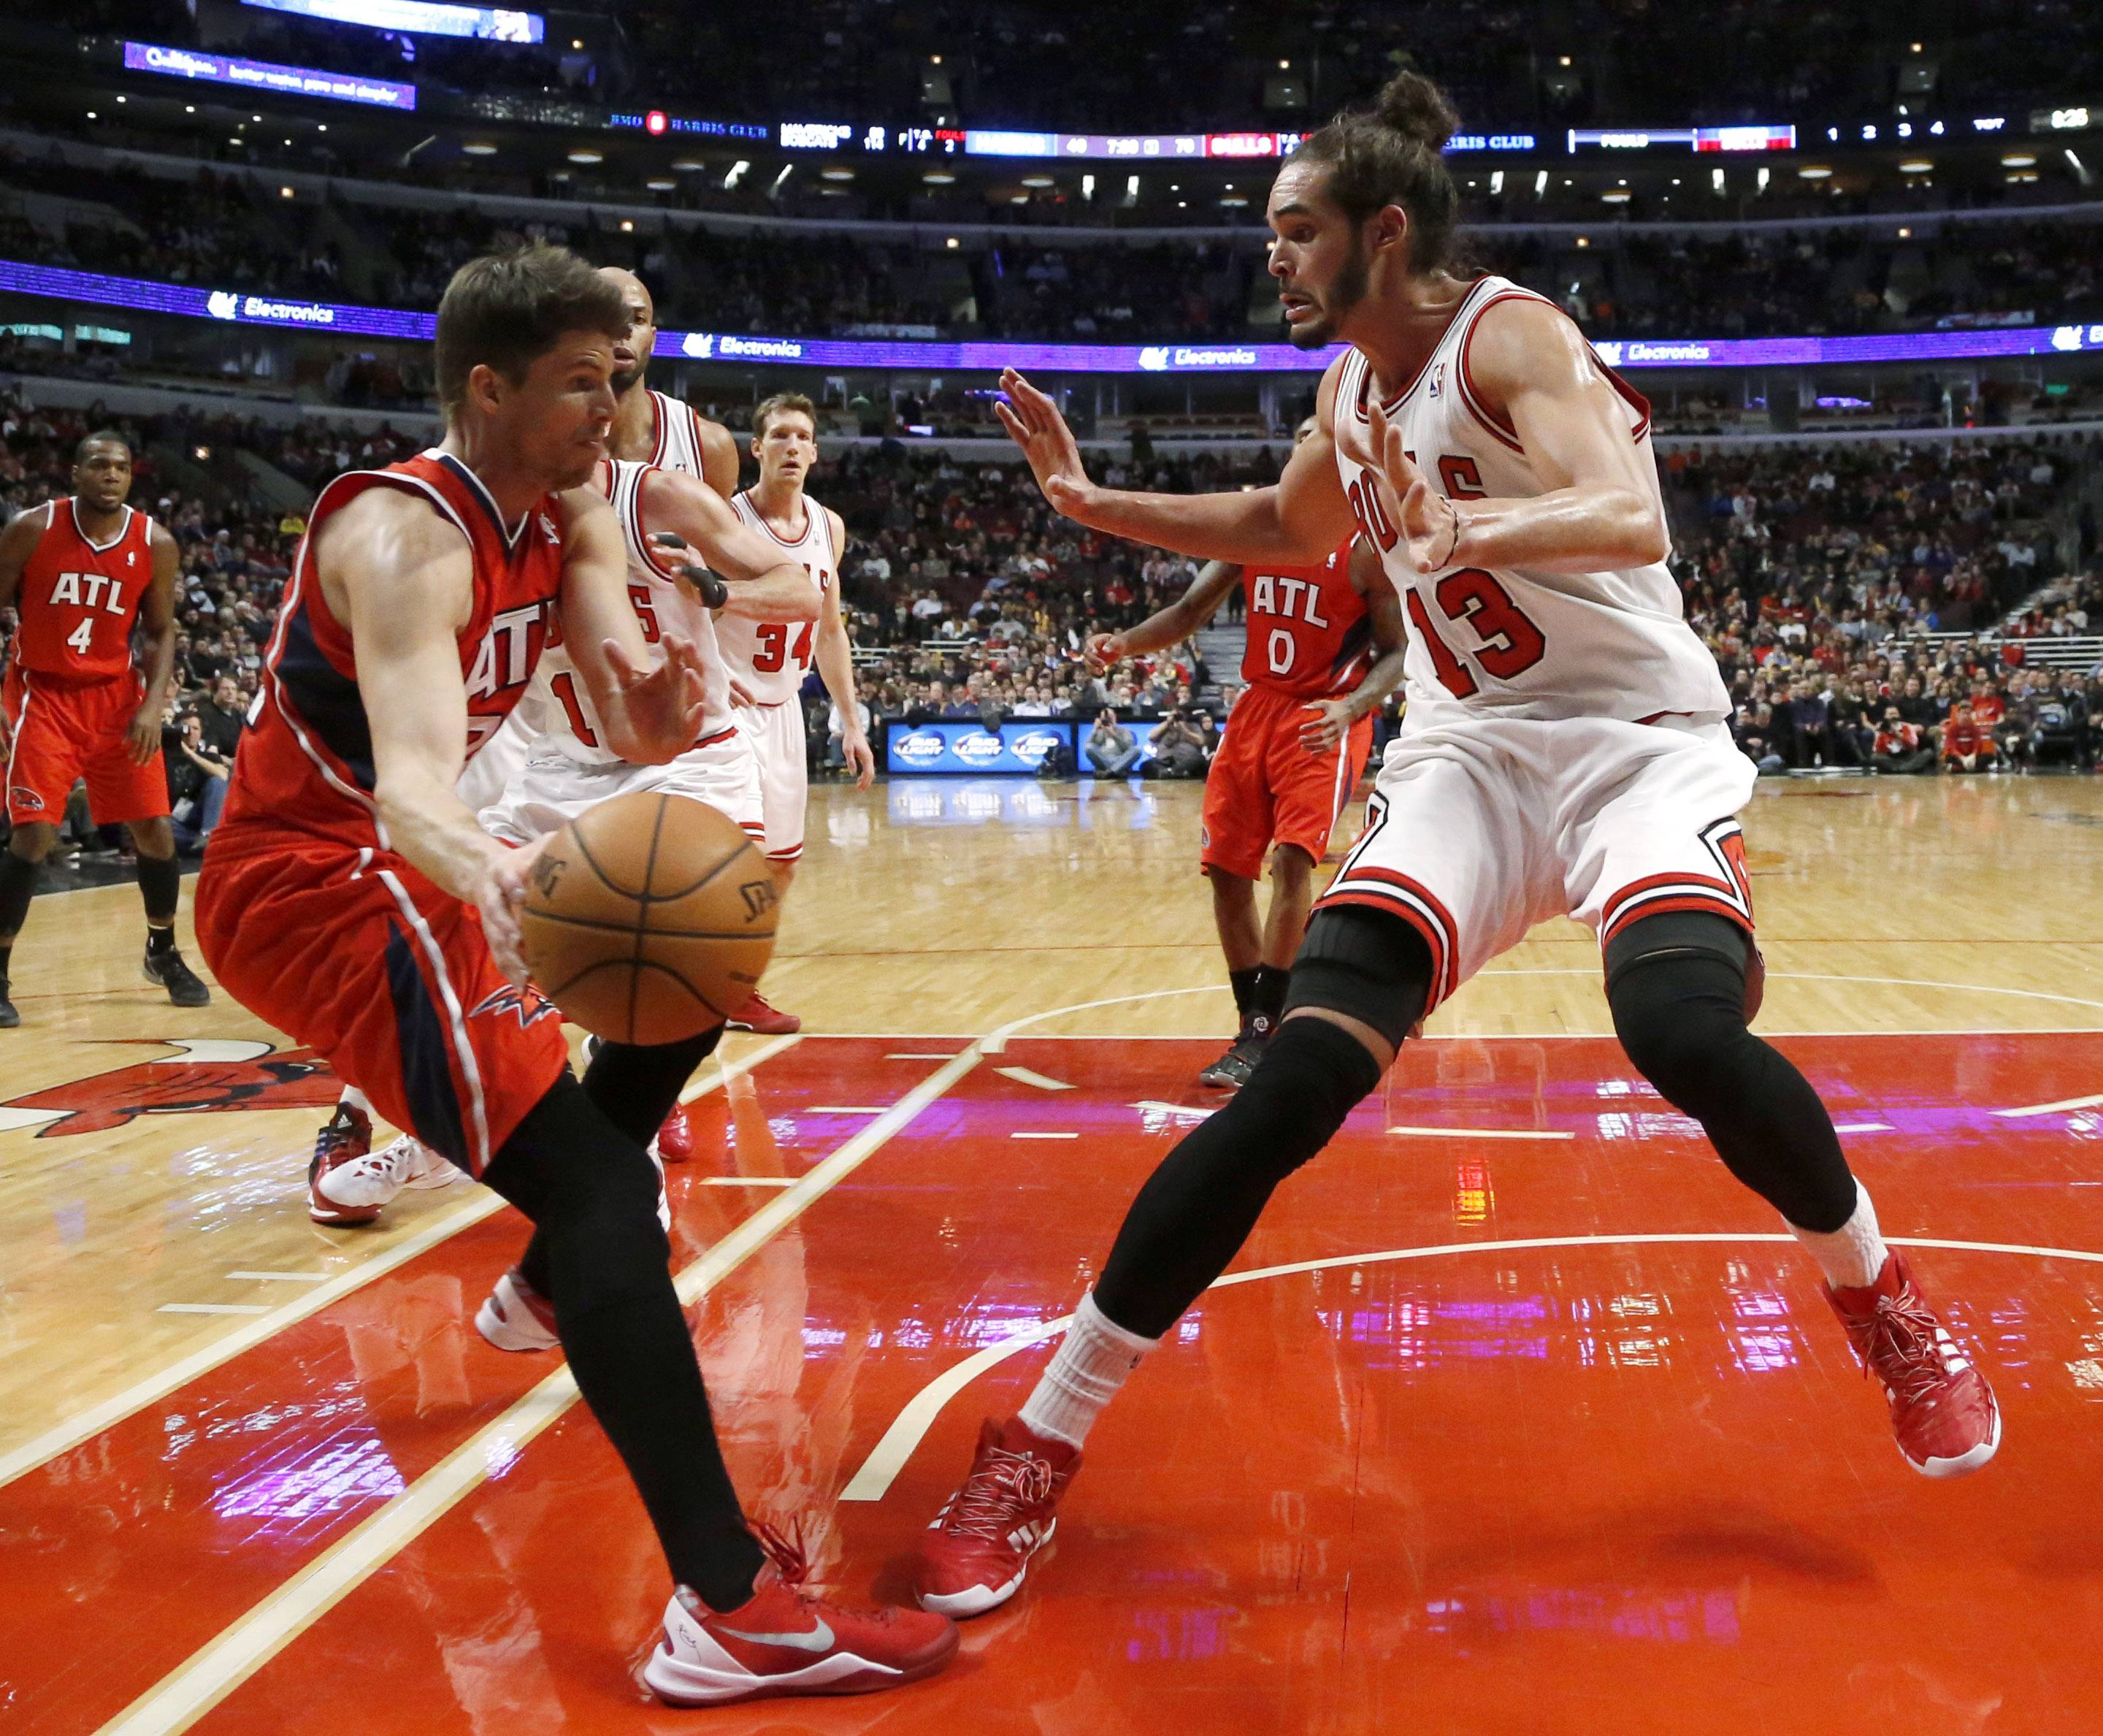 Atlanta Hawks guard Kyle Korver, left, is forced to pass as Chicago Bulls center Joakim Noah (13) defends during the second half of an NBA basketball game Tuesday, Feb. 11, 2014, in Chicago. The Bulls won 100-85.